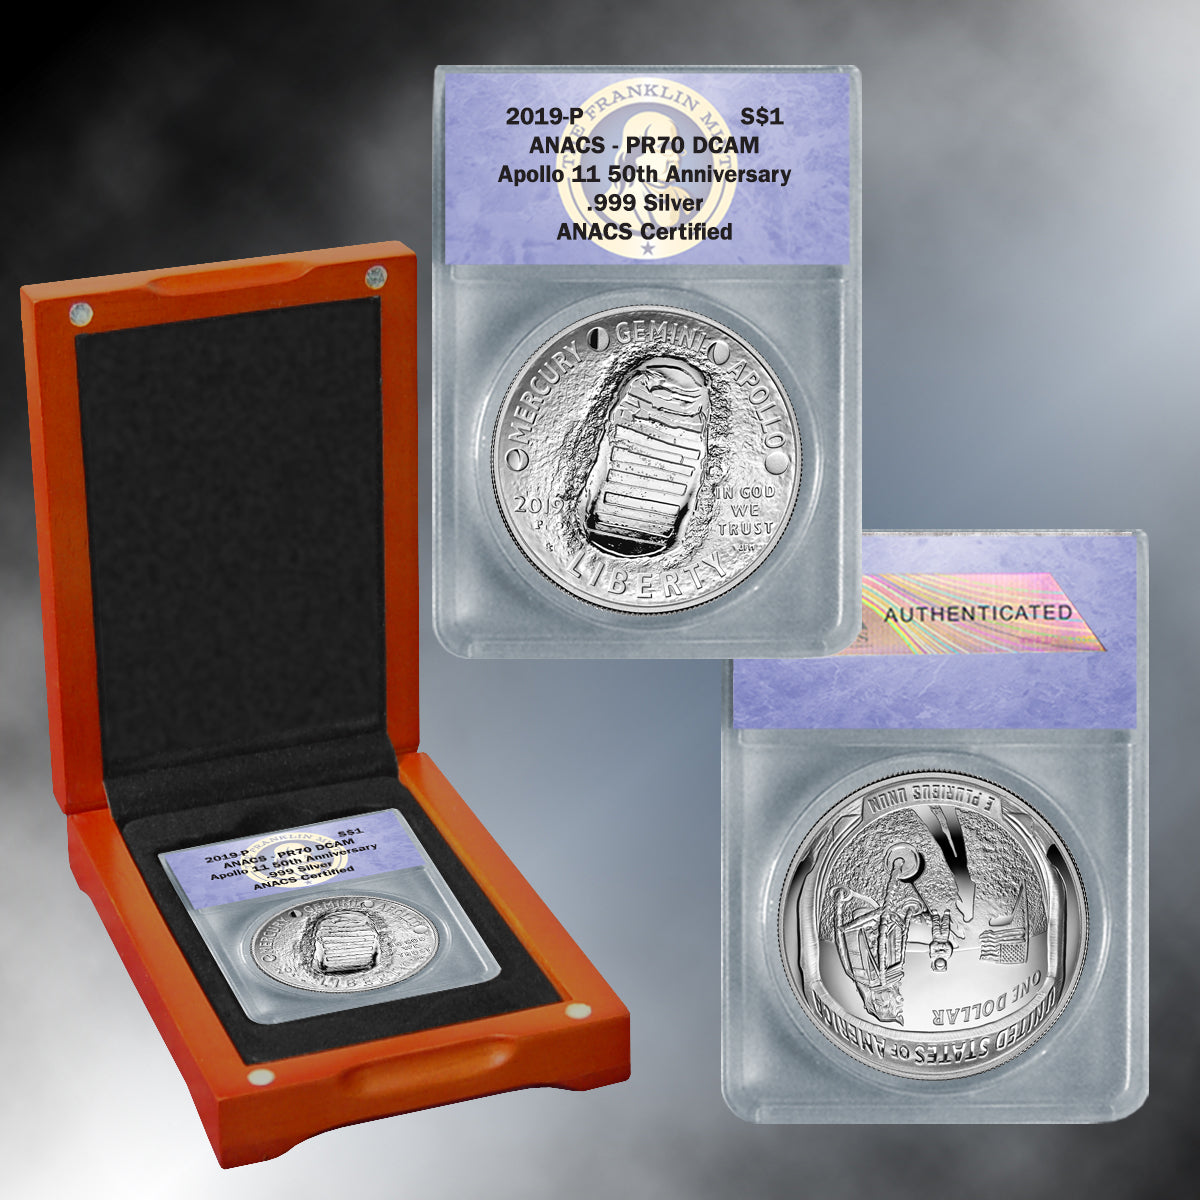 Apollo 11 50th Anniversary 2019 PR70 Silver Dollar